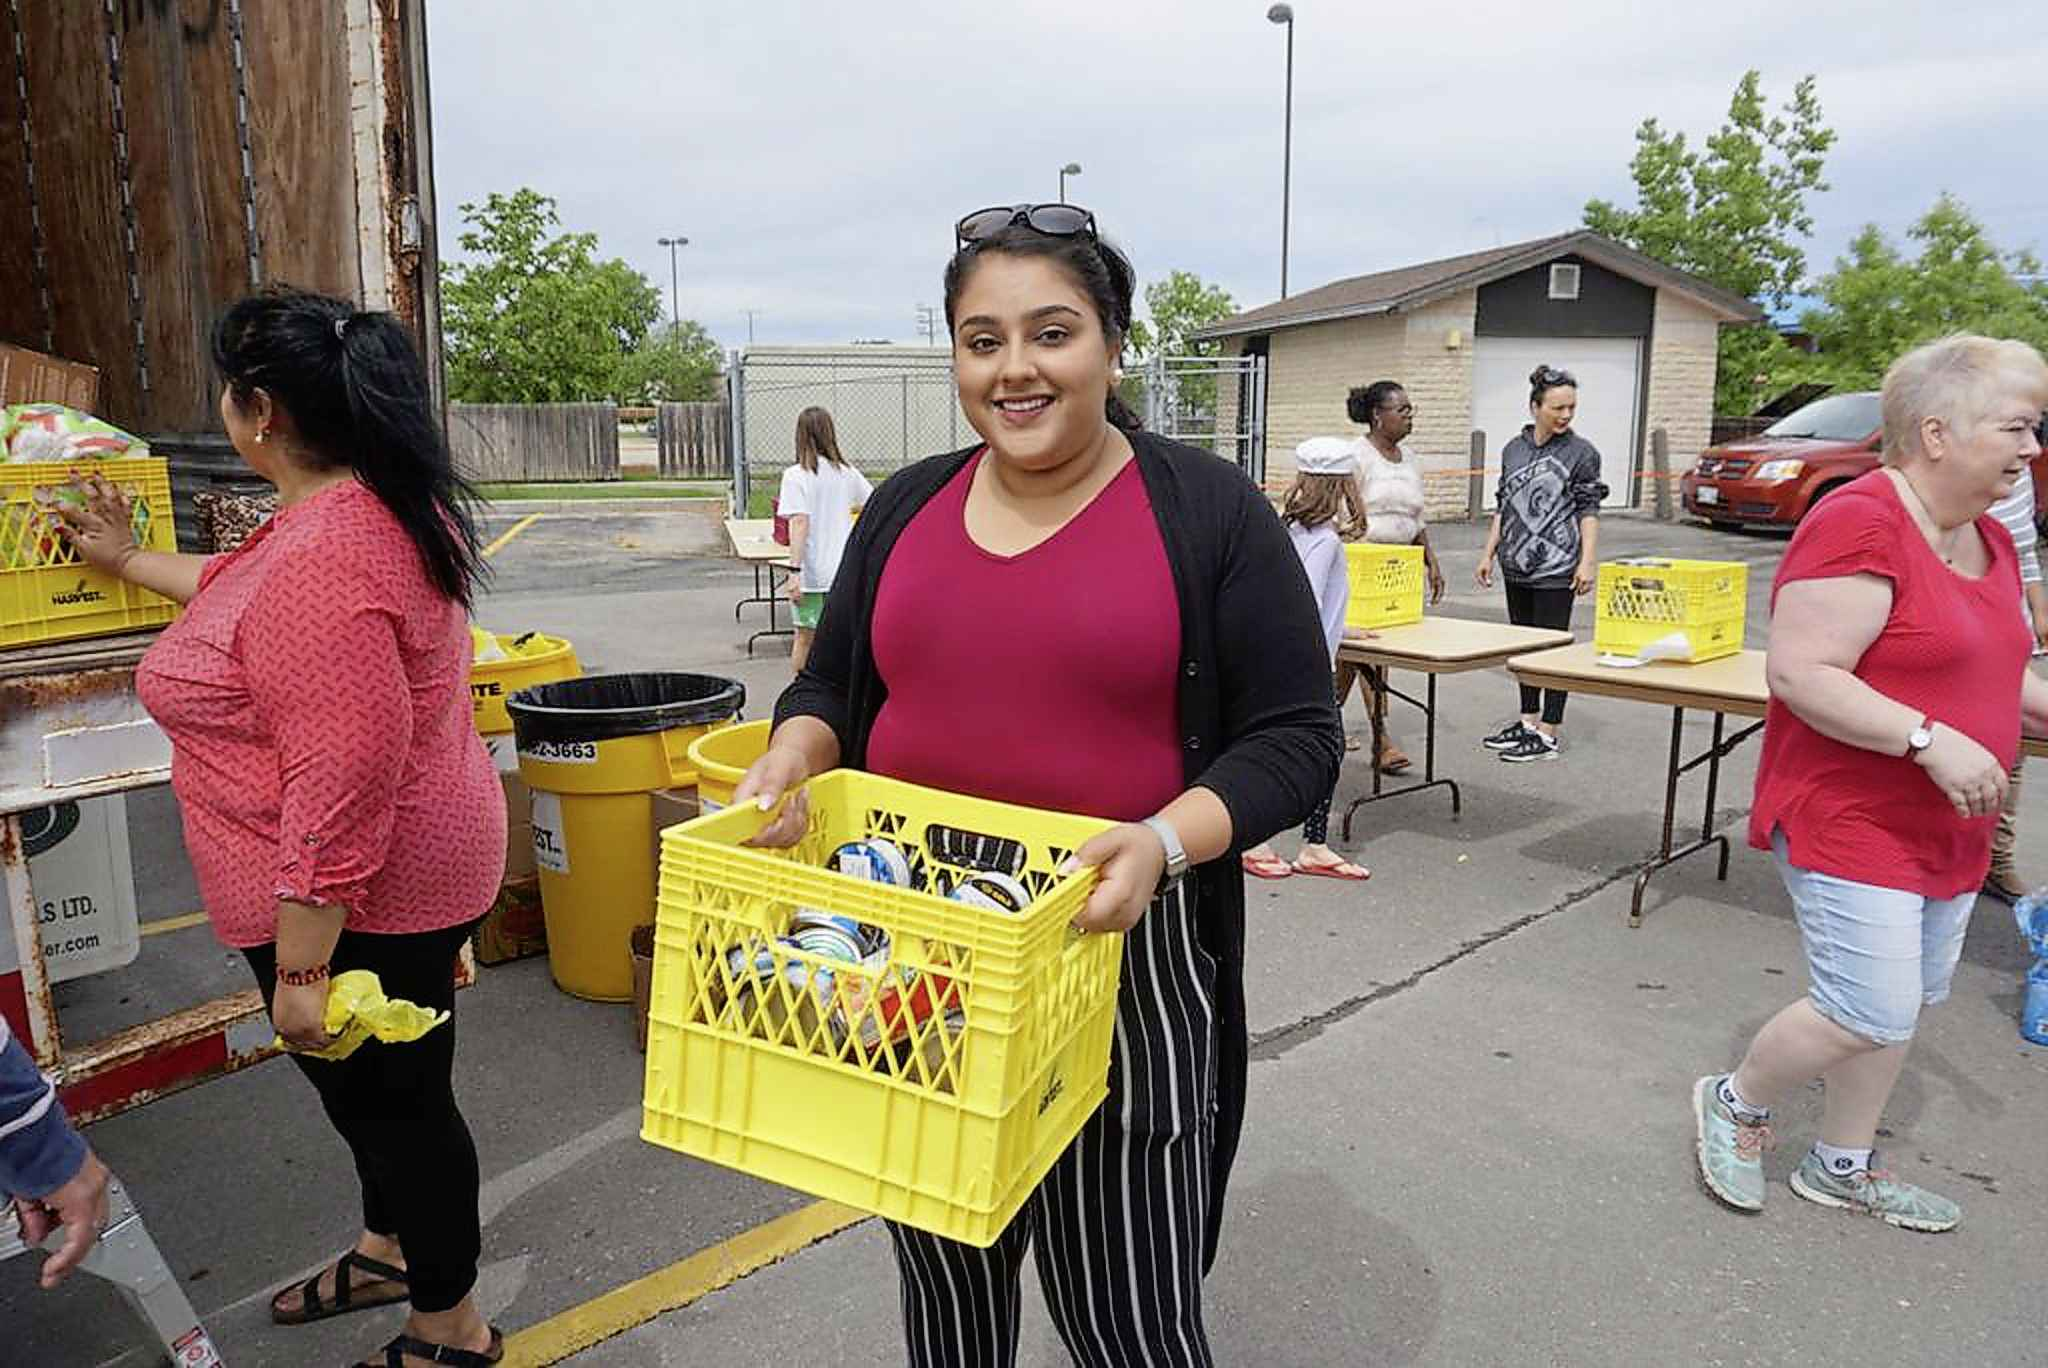 The shelves at Winnipeg Harvest are bit fuller after a record number of donations were collected in a multi-faith food drive in Winnipeg and Selkirk last month. The Church of Jesus Christ of Latter-day Saints and Manitoba Islamic Association teamed up for the drive which ran from June 17-22.